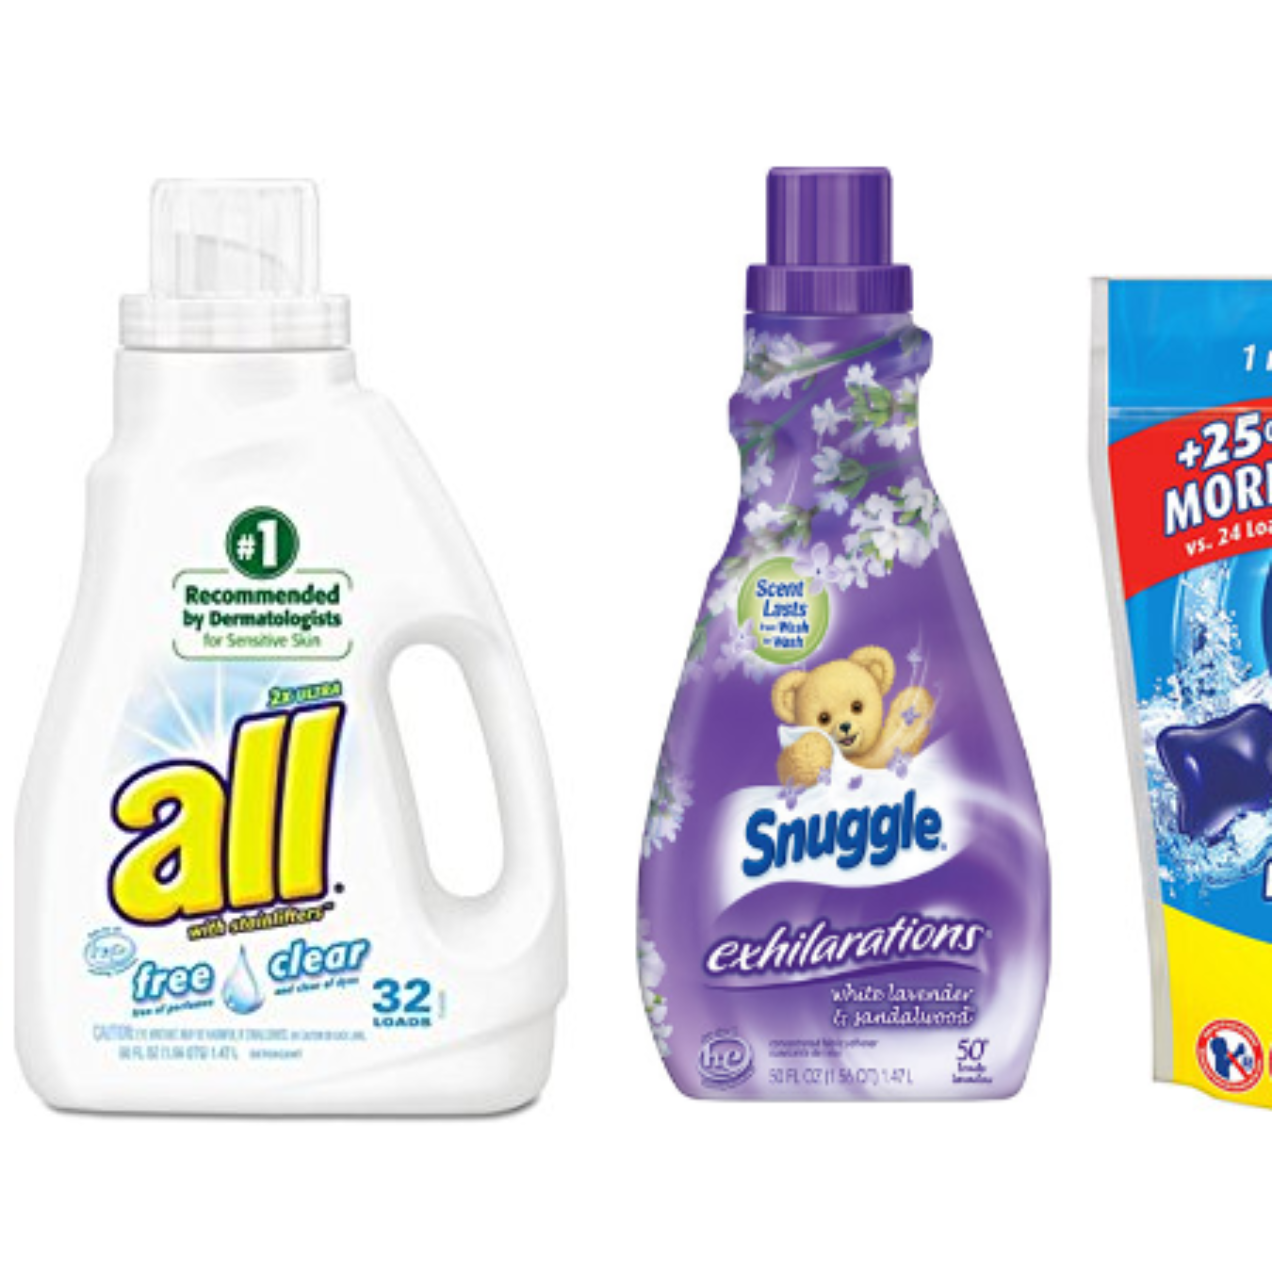 All & Snuggle Laundry Products Only $1.33 Each: Kroger Deal